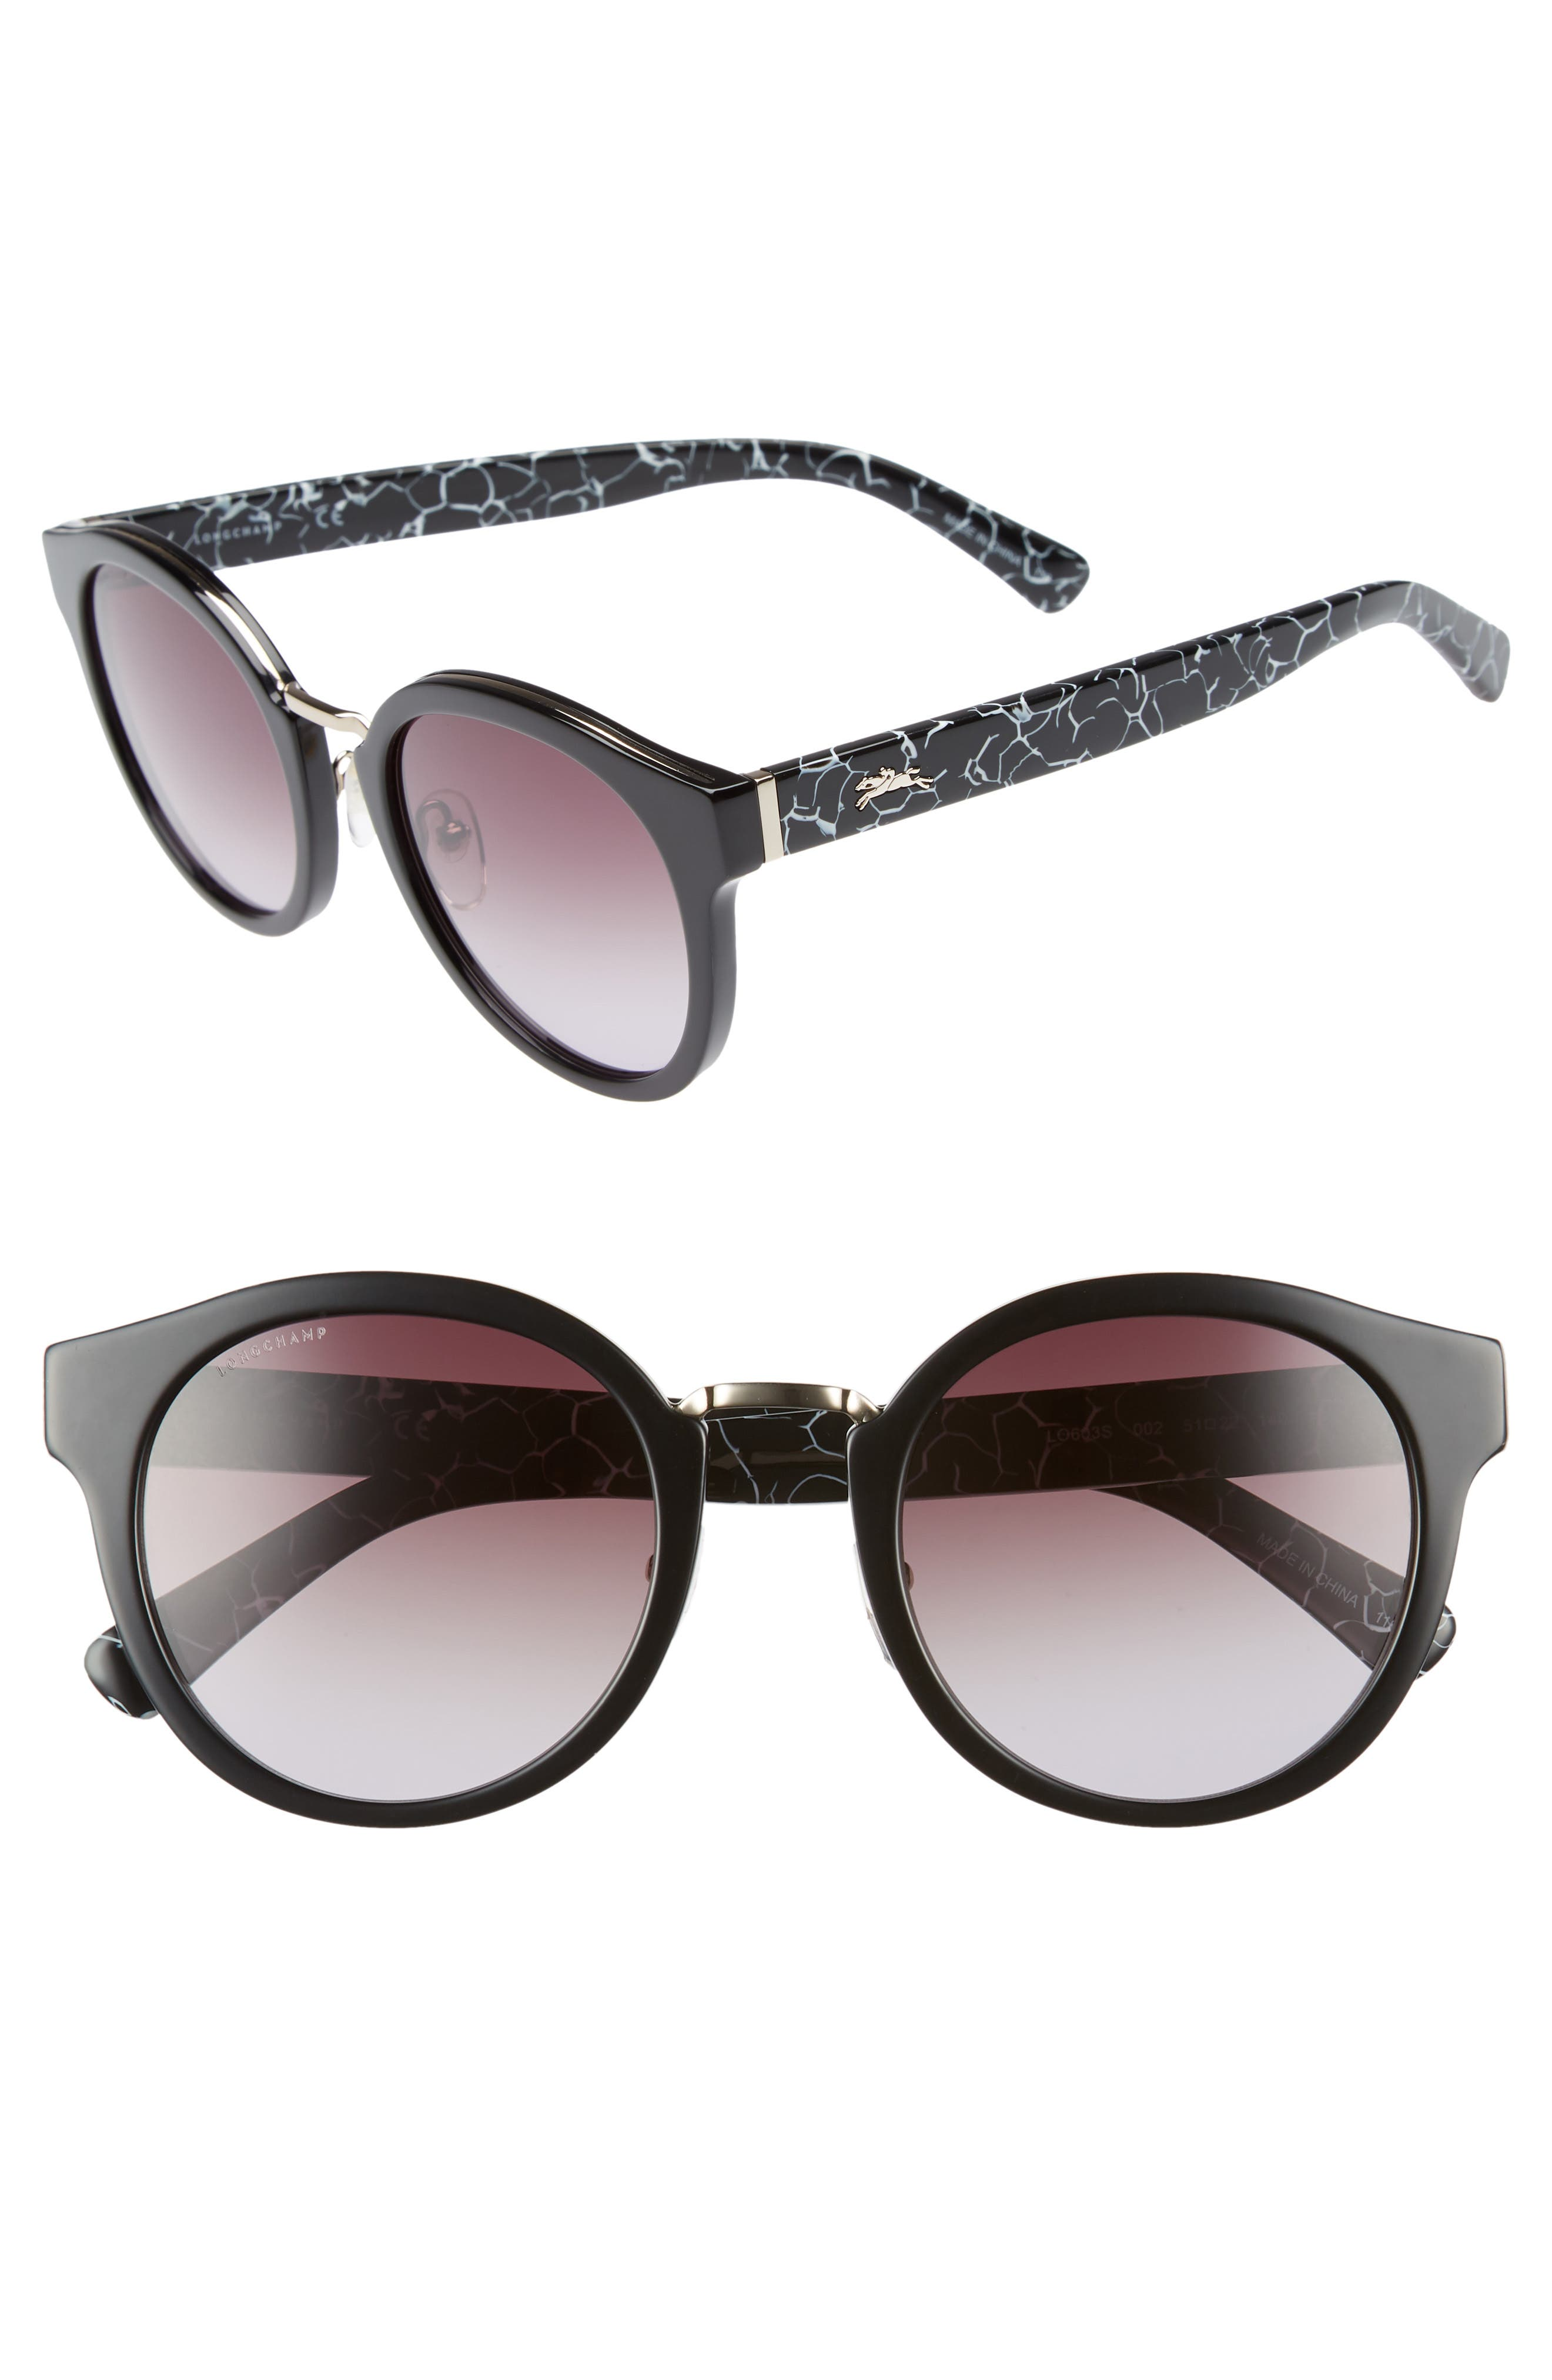 51mm Round Sunglasses,                         Main,                         color, MARBLE BLACK